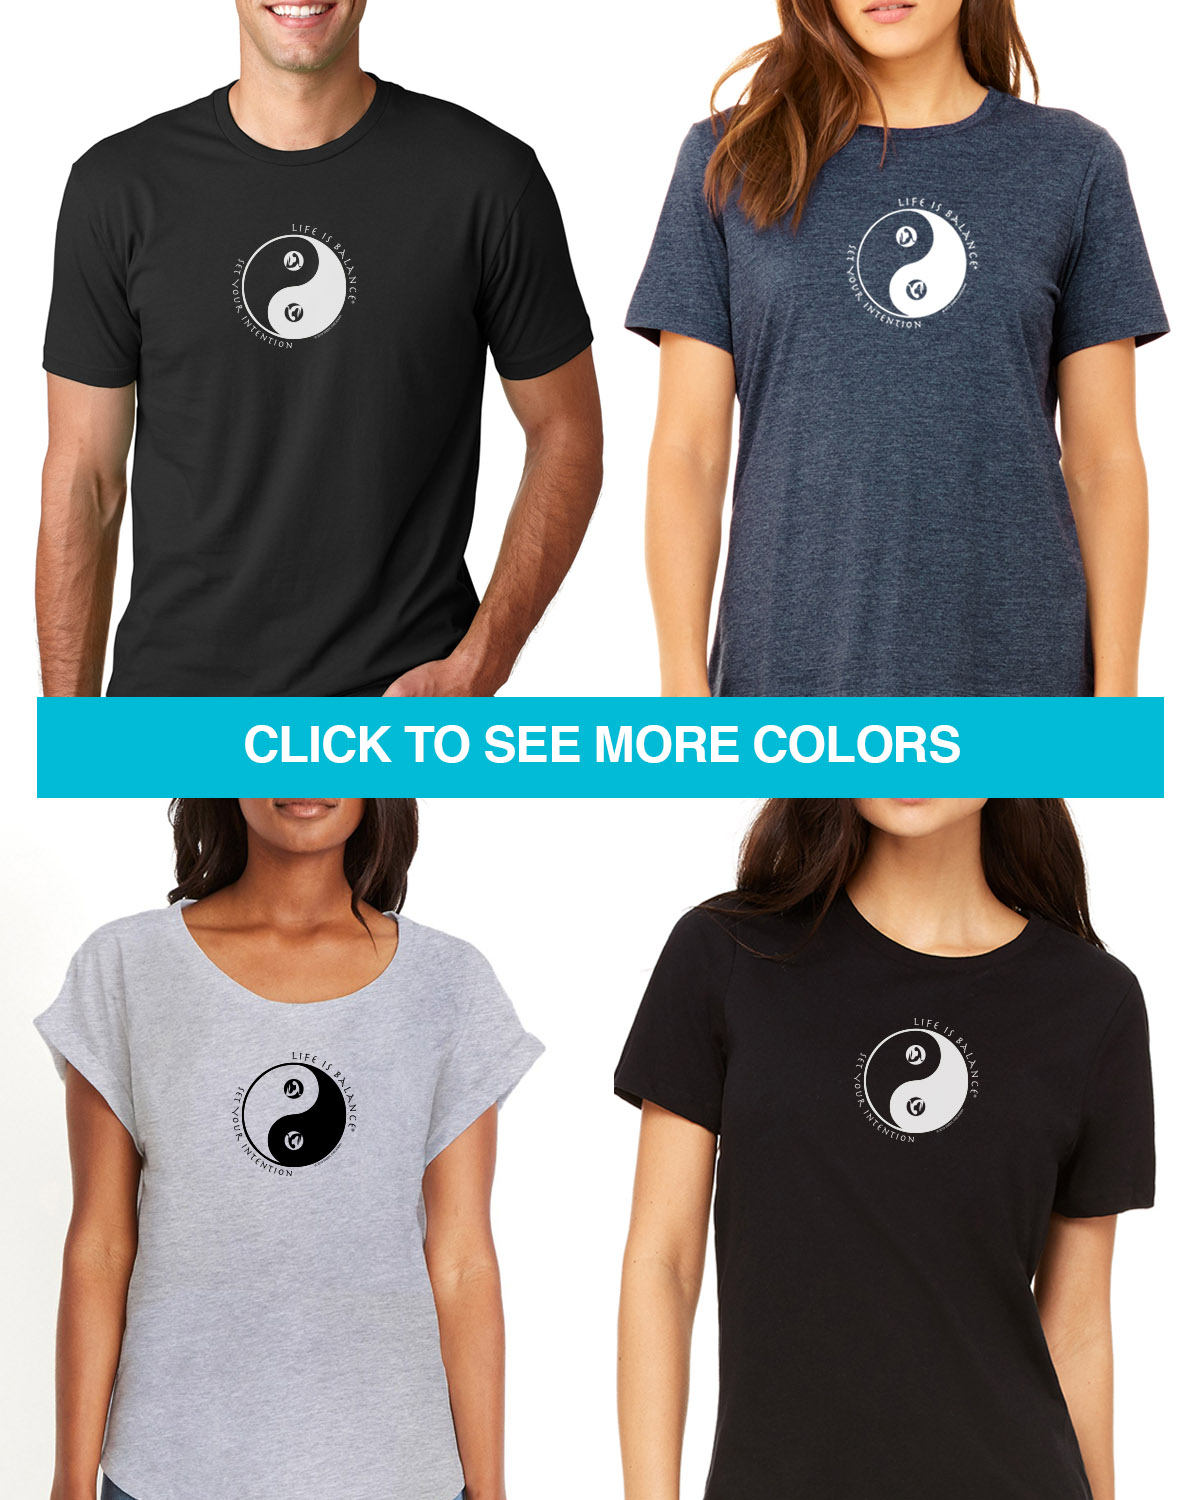 Yoga Tees for Men & Women